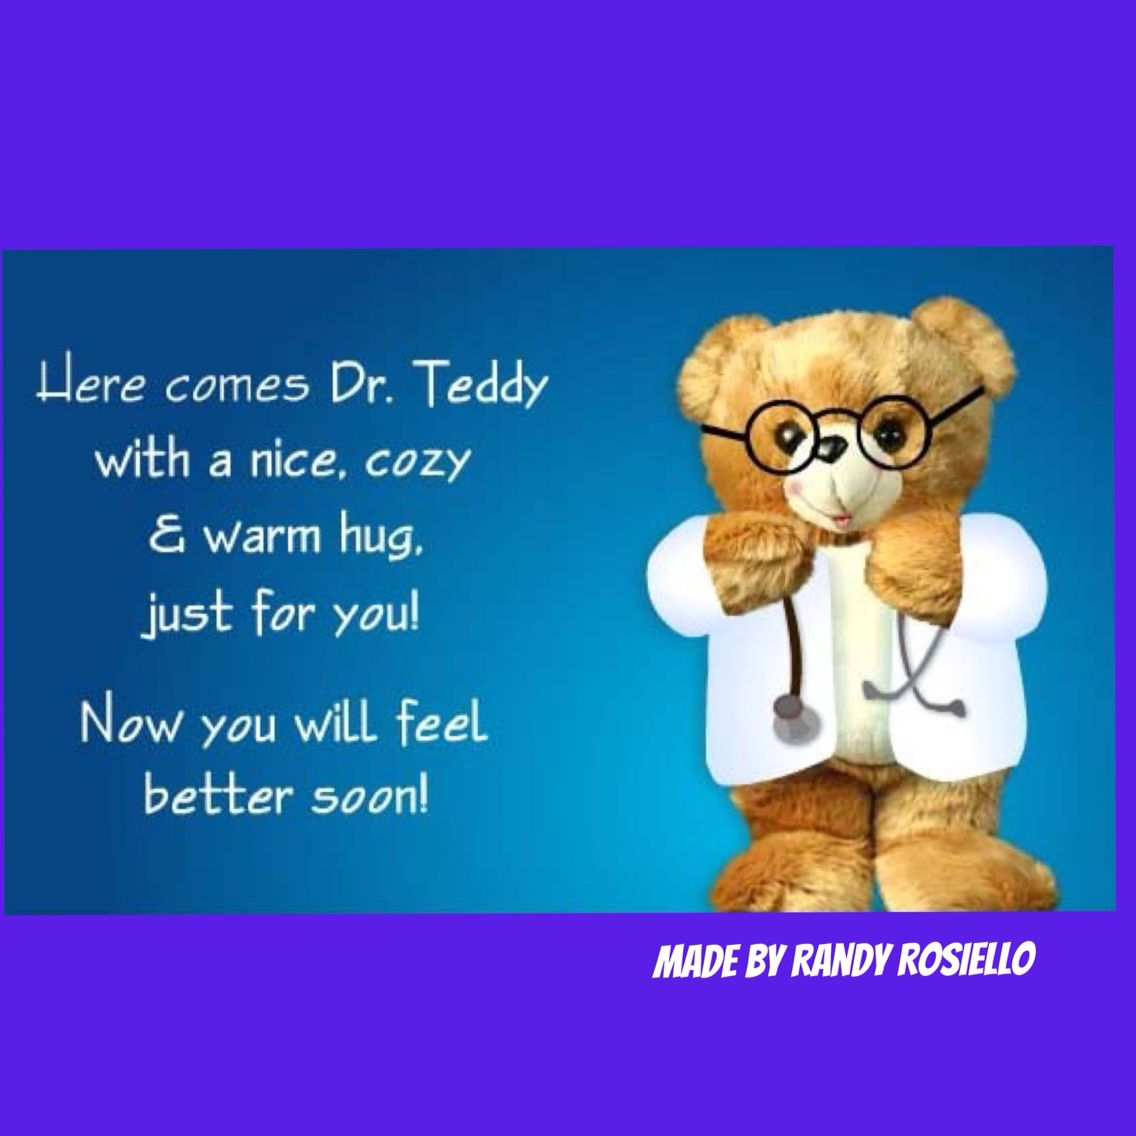 Dr Teddy Coming To Make You Feel Better Get Well Soon Get Well